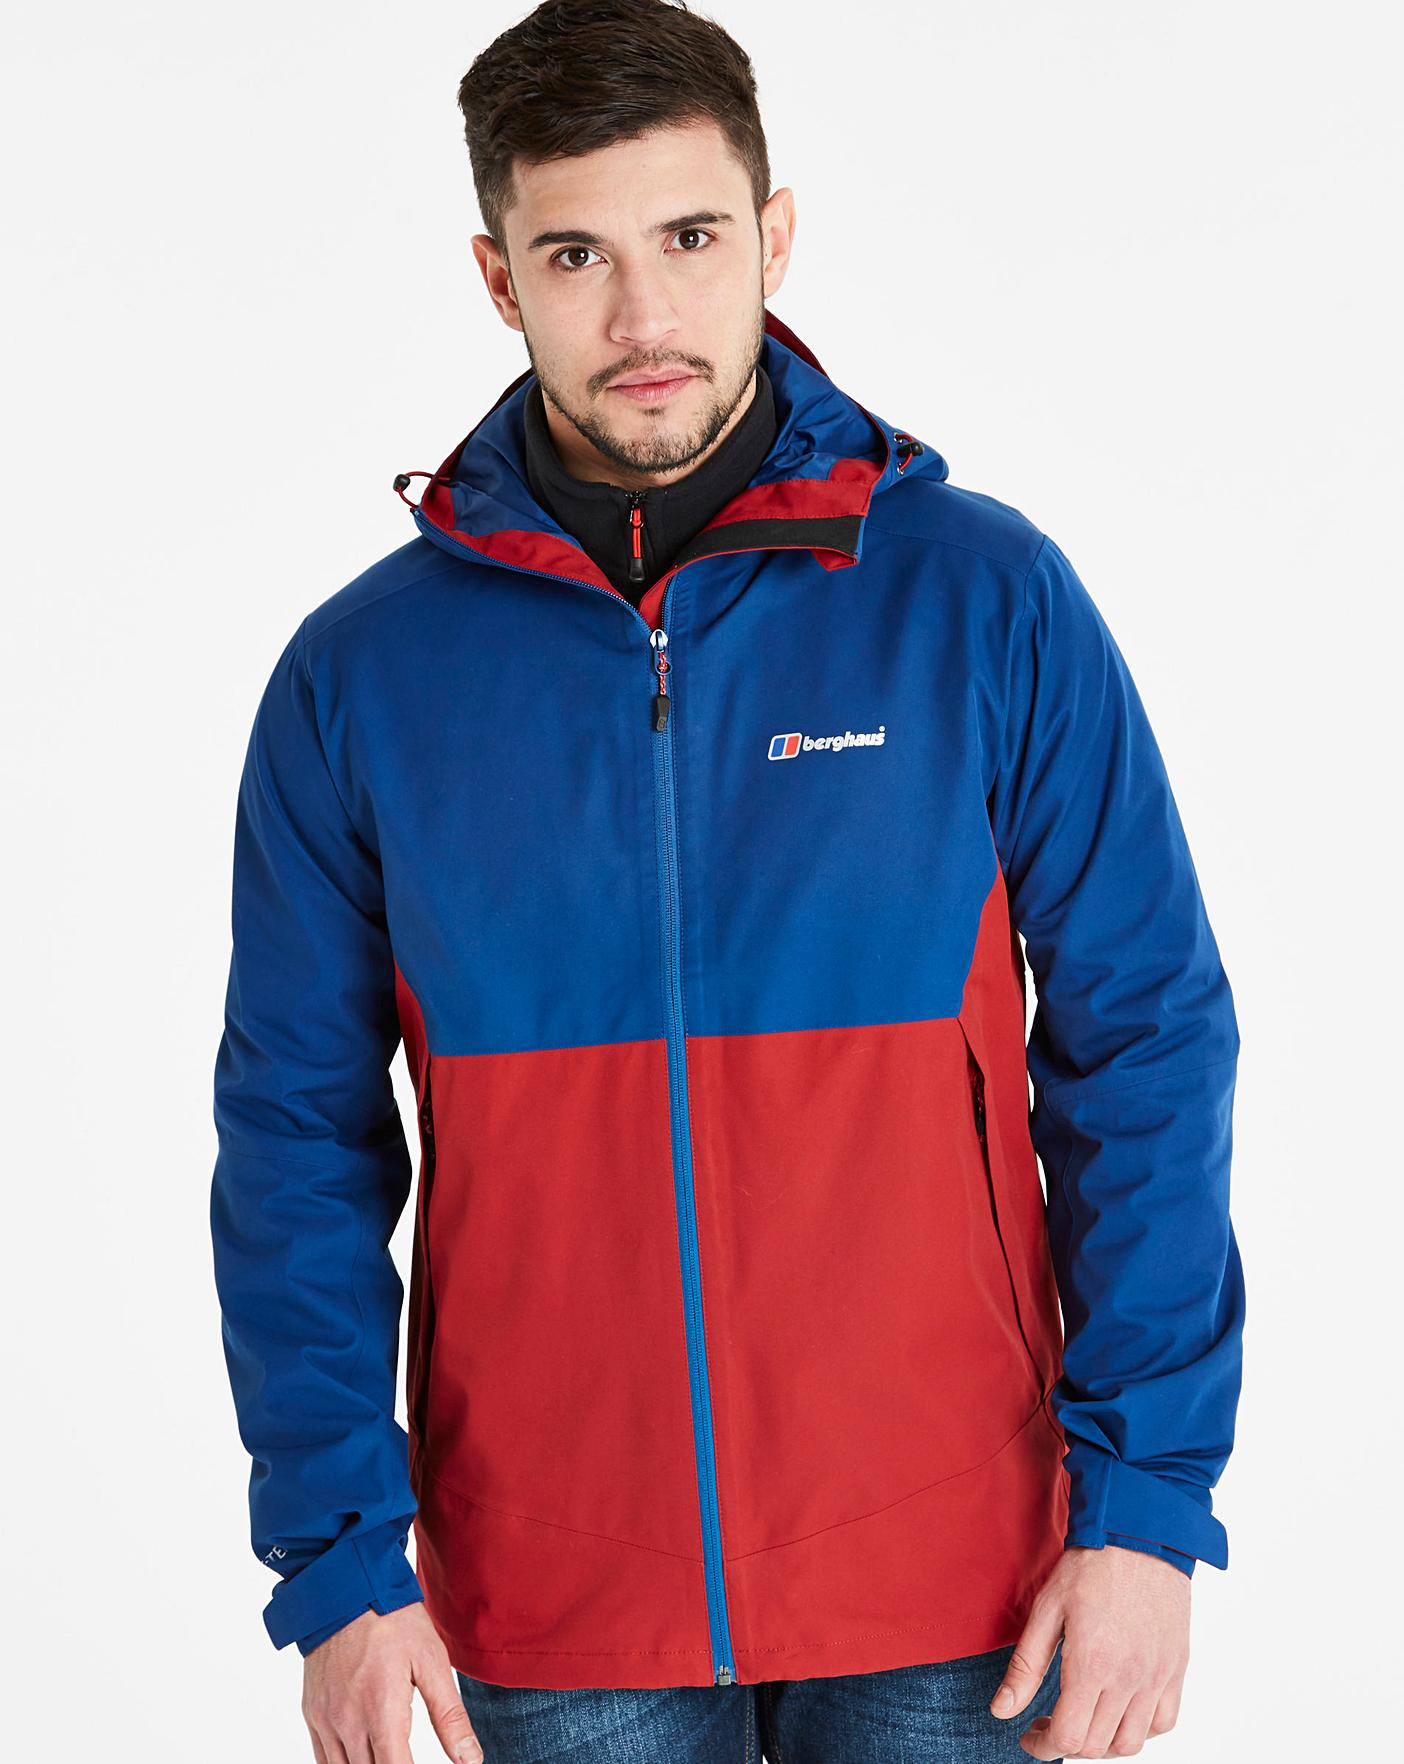 rich and magnificent recognized brands clear and distinctive Berghaus Fellmaster Jacket